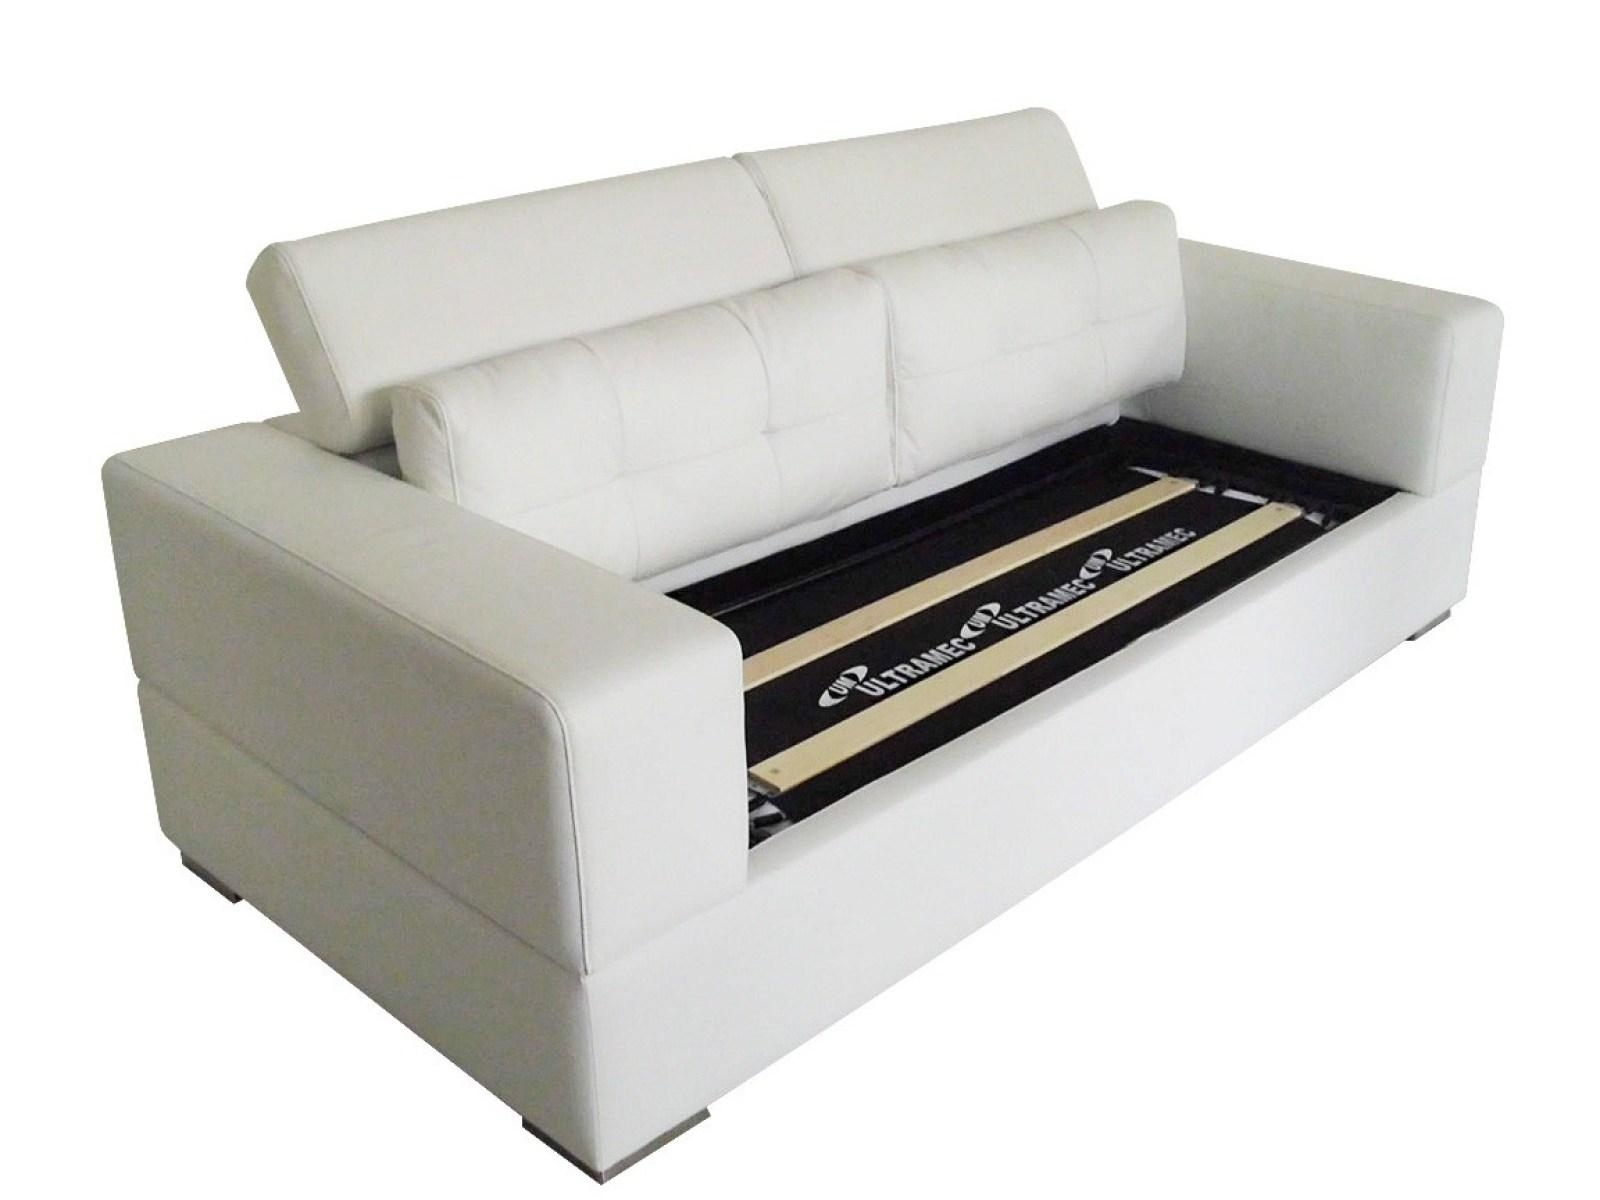 ▻ Sofa : 2 Good Queen Size Pull Out Sofa Bed 77 For Your Pull Out In Pull Out Queen Size Bed Sofas (Image 2 of 20)